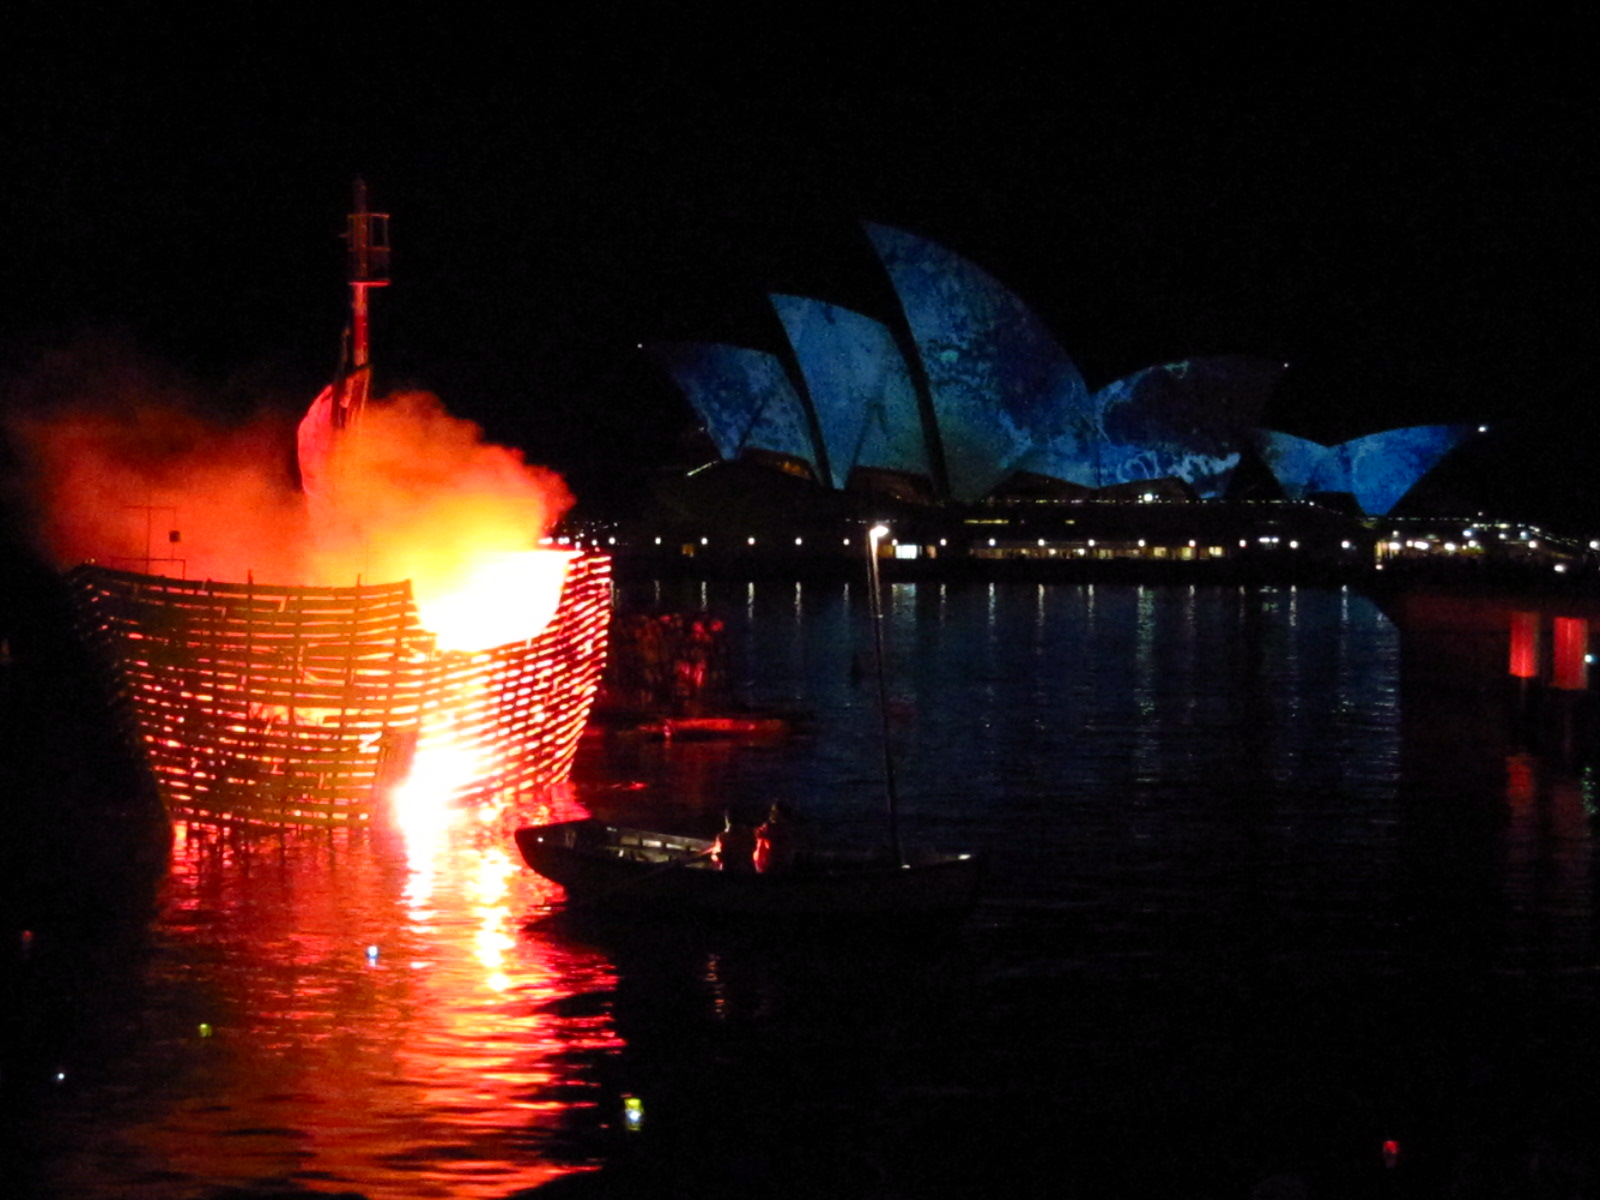 IMG 0809 - Get Sydney Opera House Fire Photos  Pics